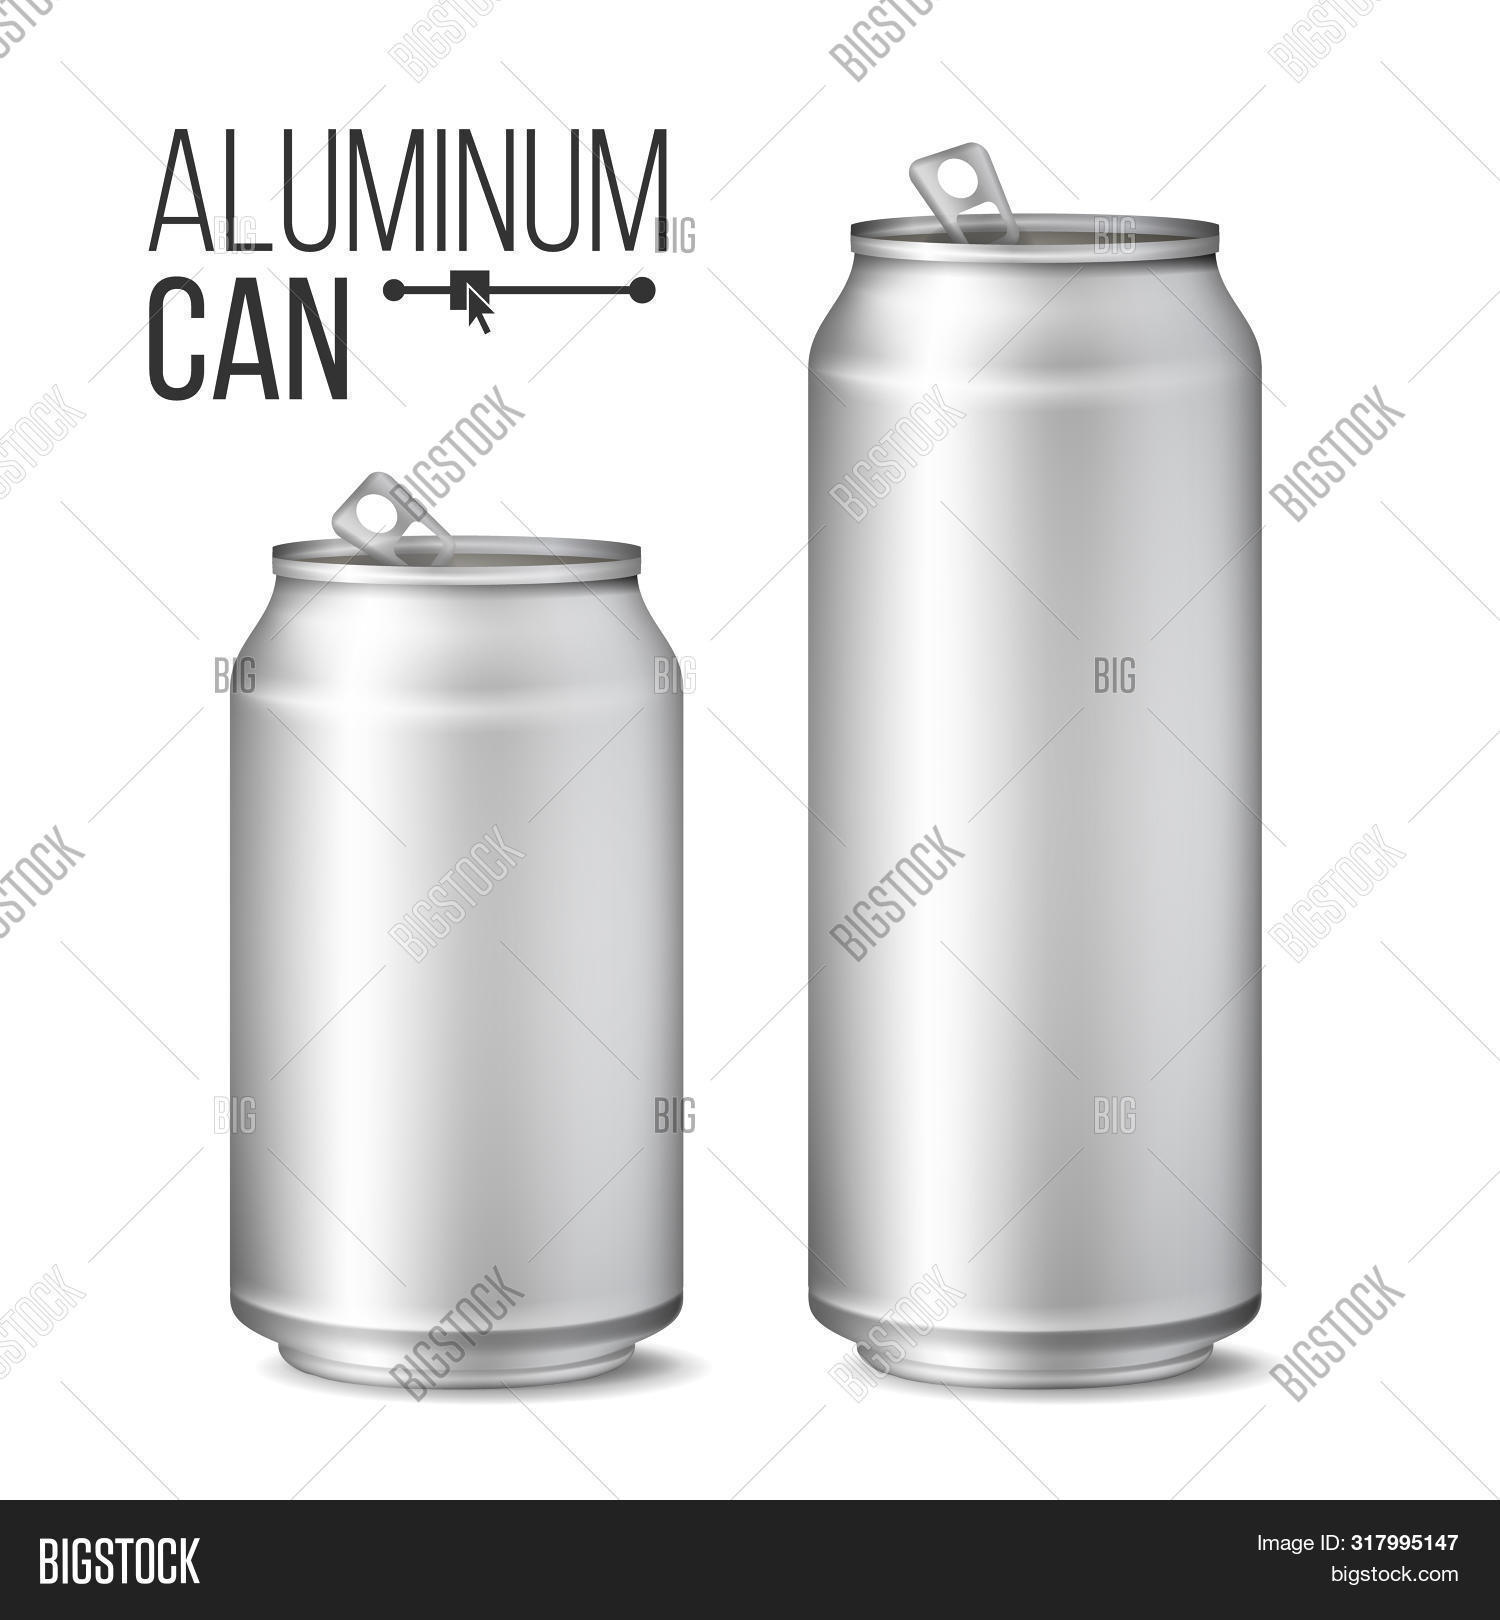 alcoholic,ale,aluminium,aluminum,bar,beverage,blank,booze,brand,brew,can,carbonated,cold,color,container,design,disposable,drink,empty,energy,fresh,freshness,graphic,illustration,isolated,lager,liquid,low,metal,metallic,object,packaging,packing,plain,pub,realistic,recycling,reflection,refreshment,side,silver,soda,stainless,steel,thirst,tin,tonic,unbranded,unprinted,view